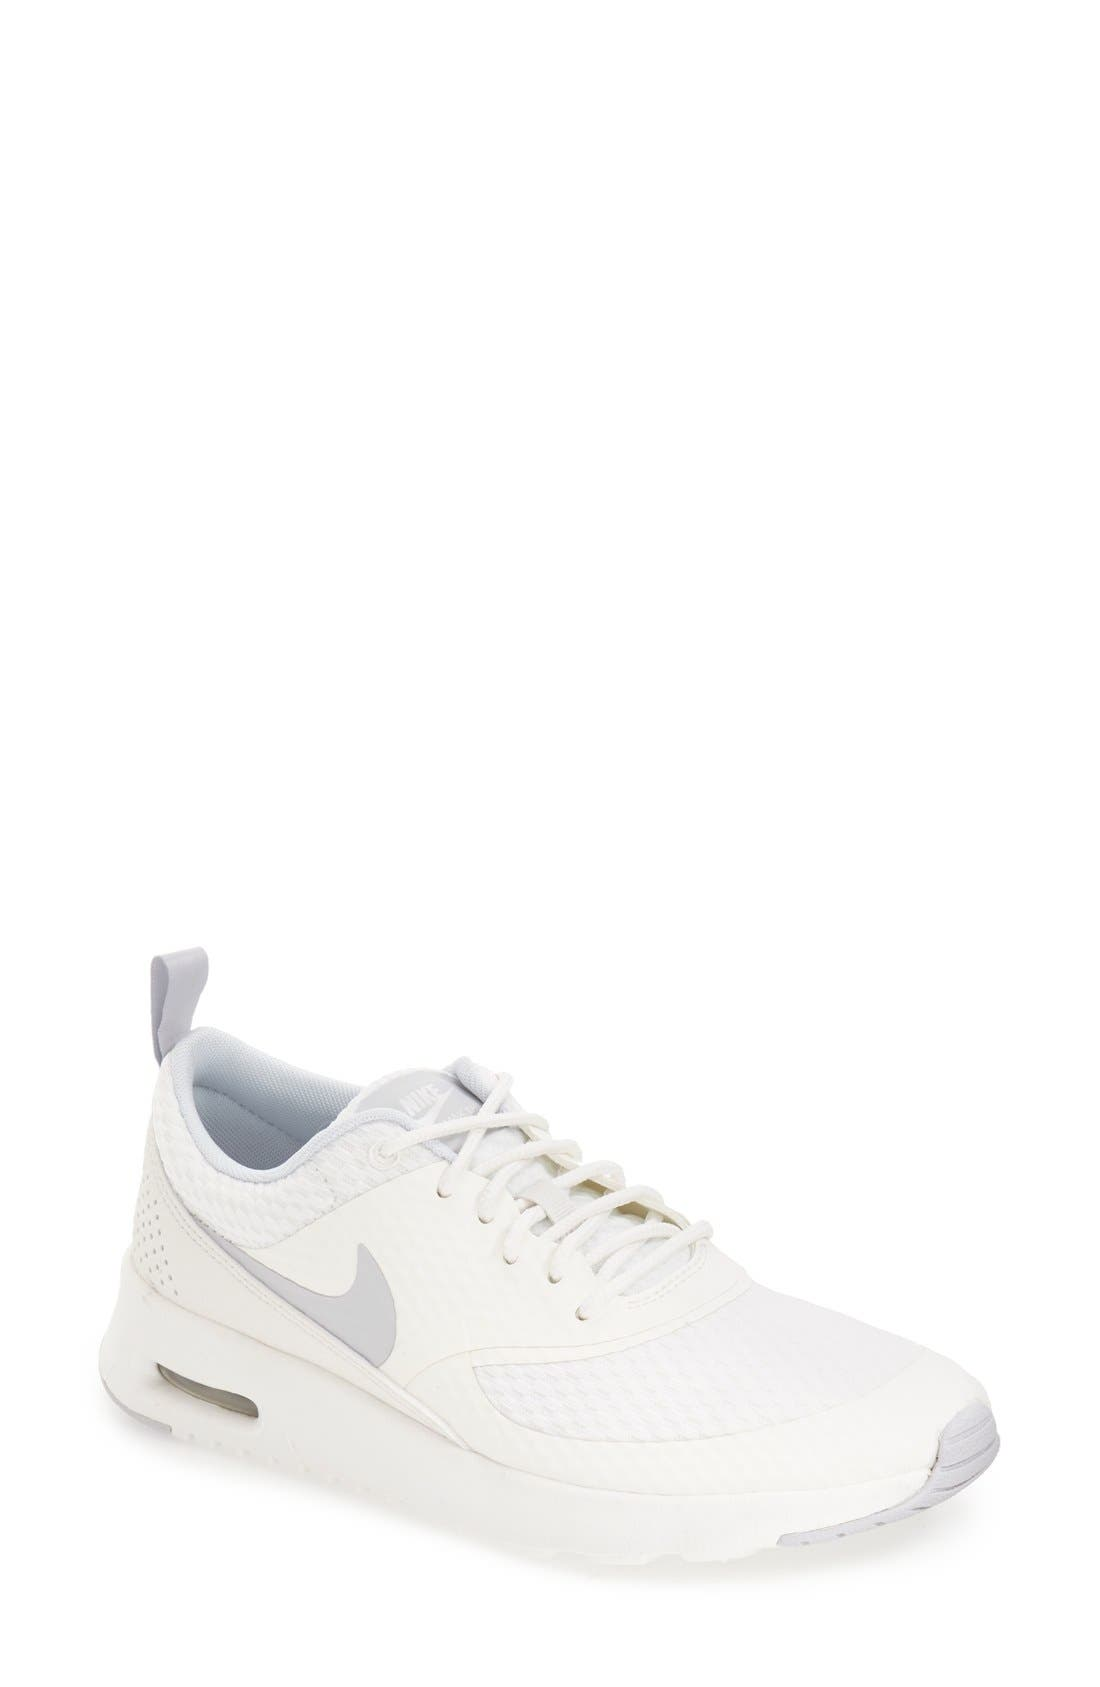 Alternate Image 1 Selected - Nike 'Air Max Thea' Sneaker (Women)